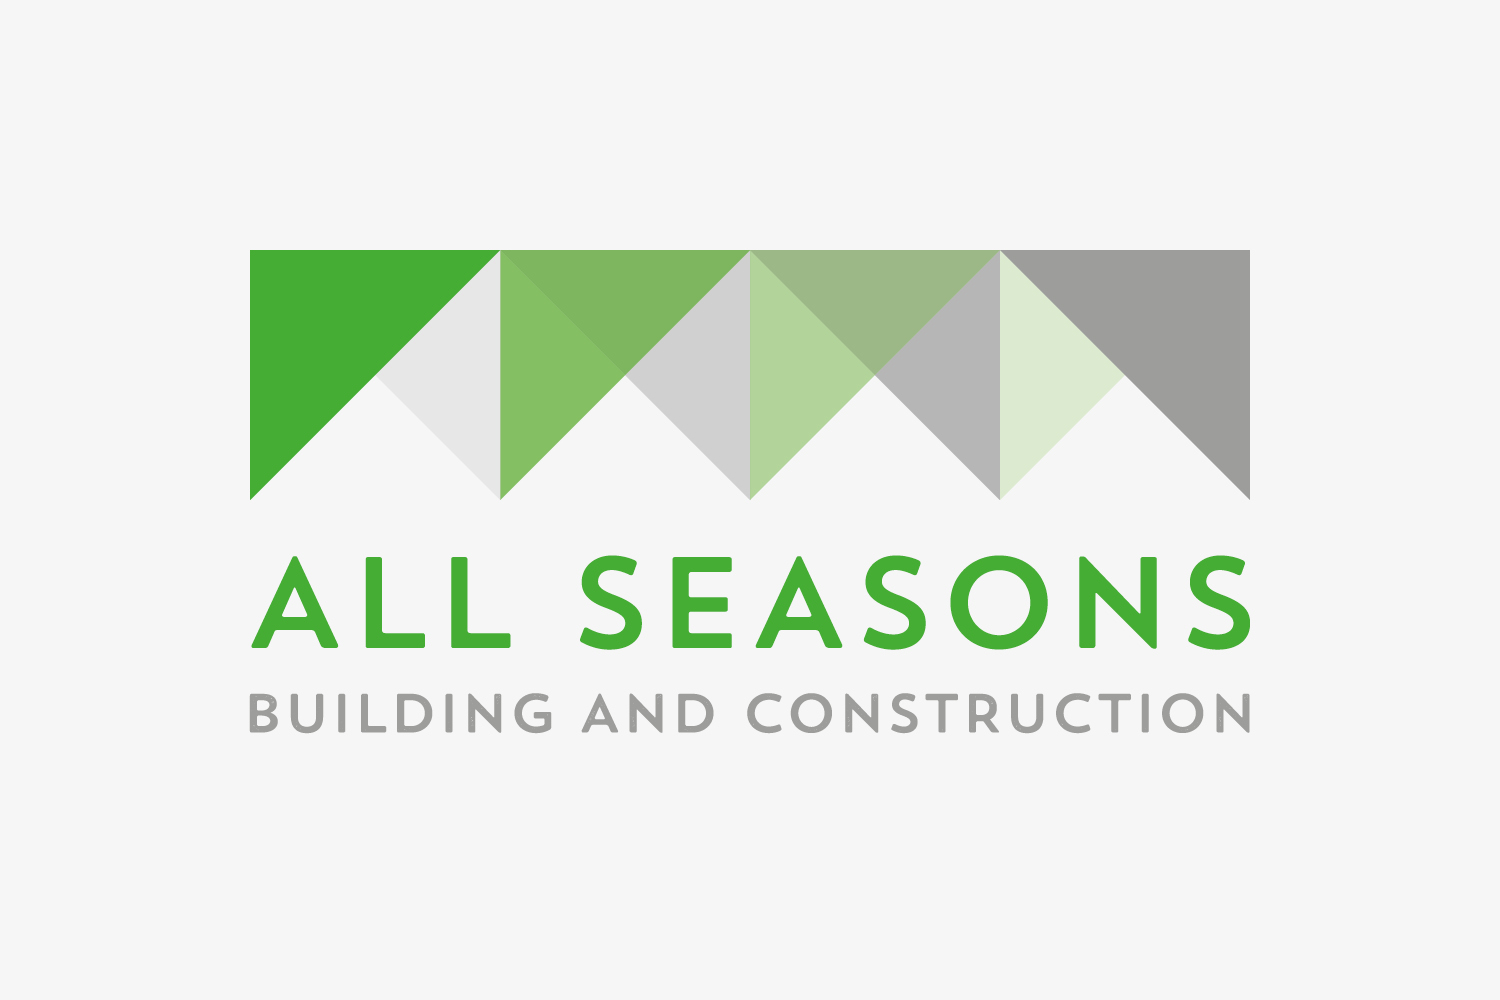 All Seasons Building and Construction sustainable builders.